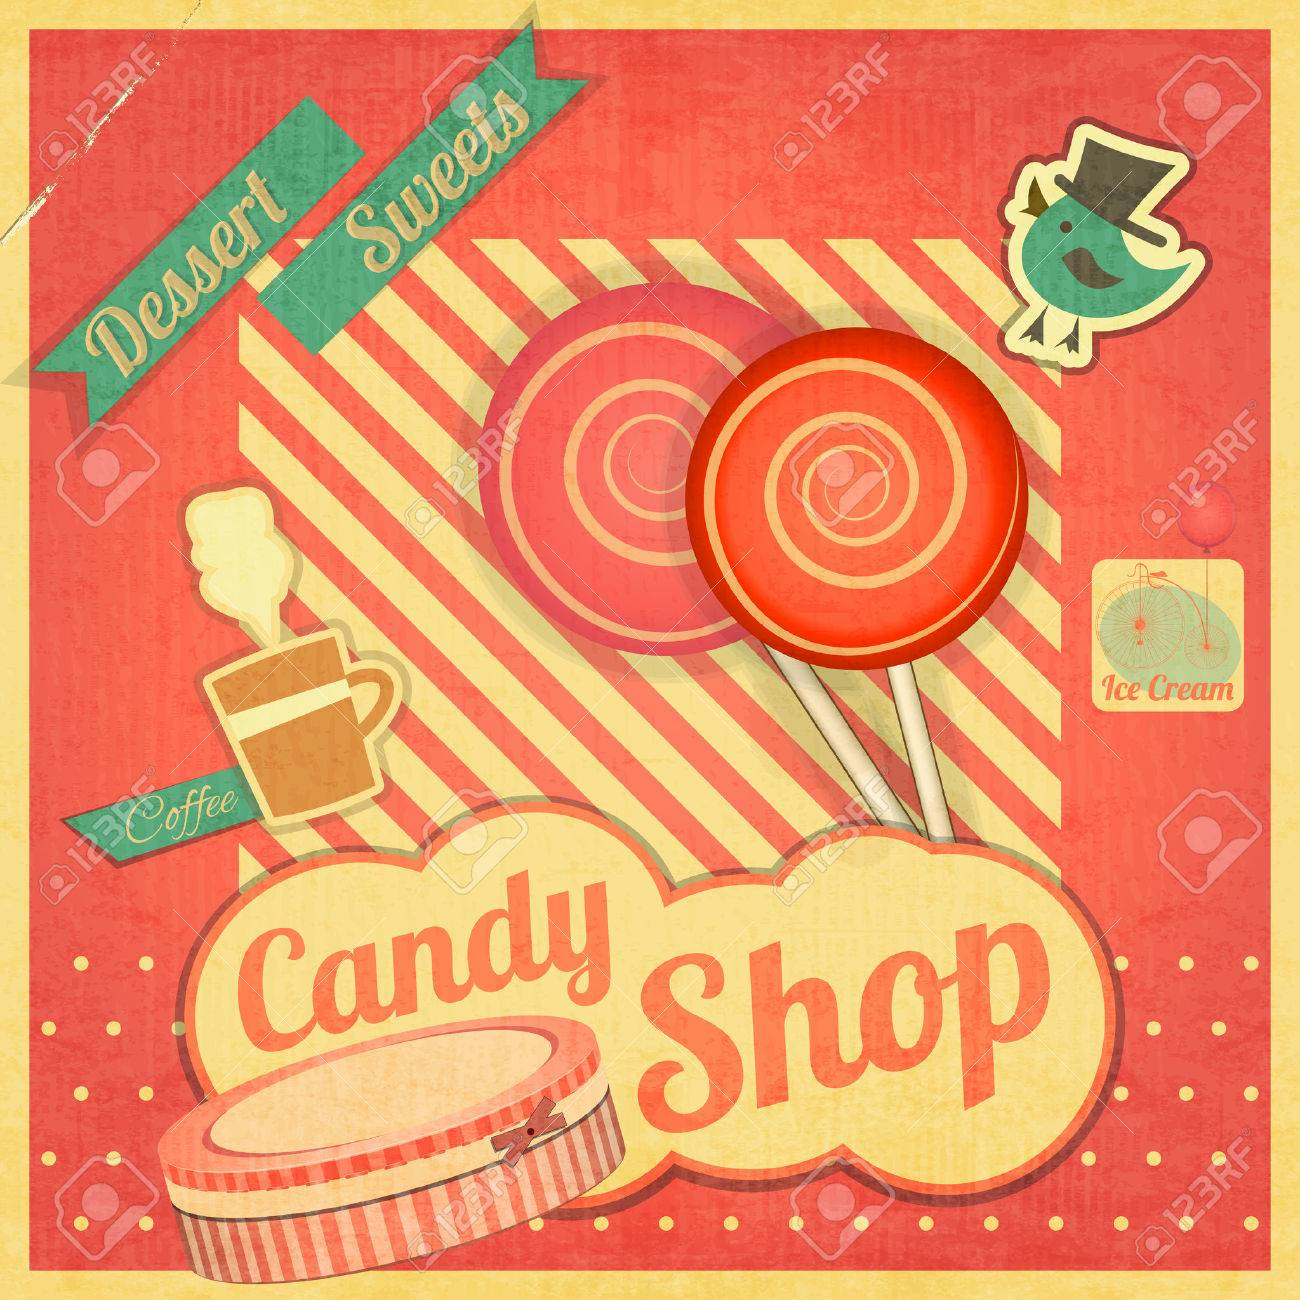 Candy Sweet Shop. Vintage Card Retro. Vector illustration Stock Vector - 24091394